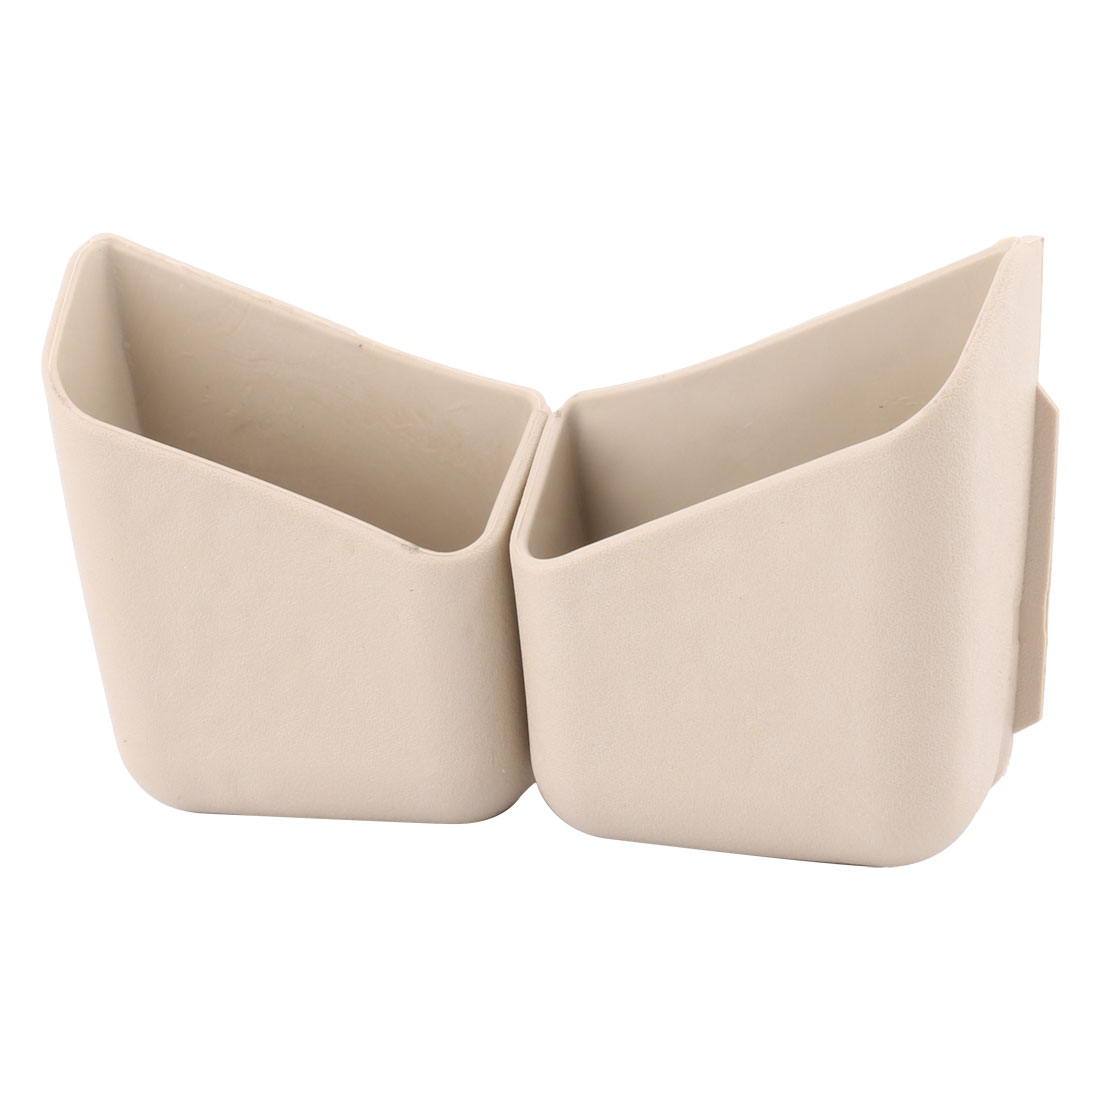 Car Interior Plastic Mobile Phones Pillar Pocket Holder Container Beige 2 Pcs